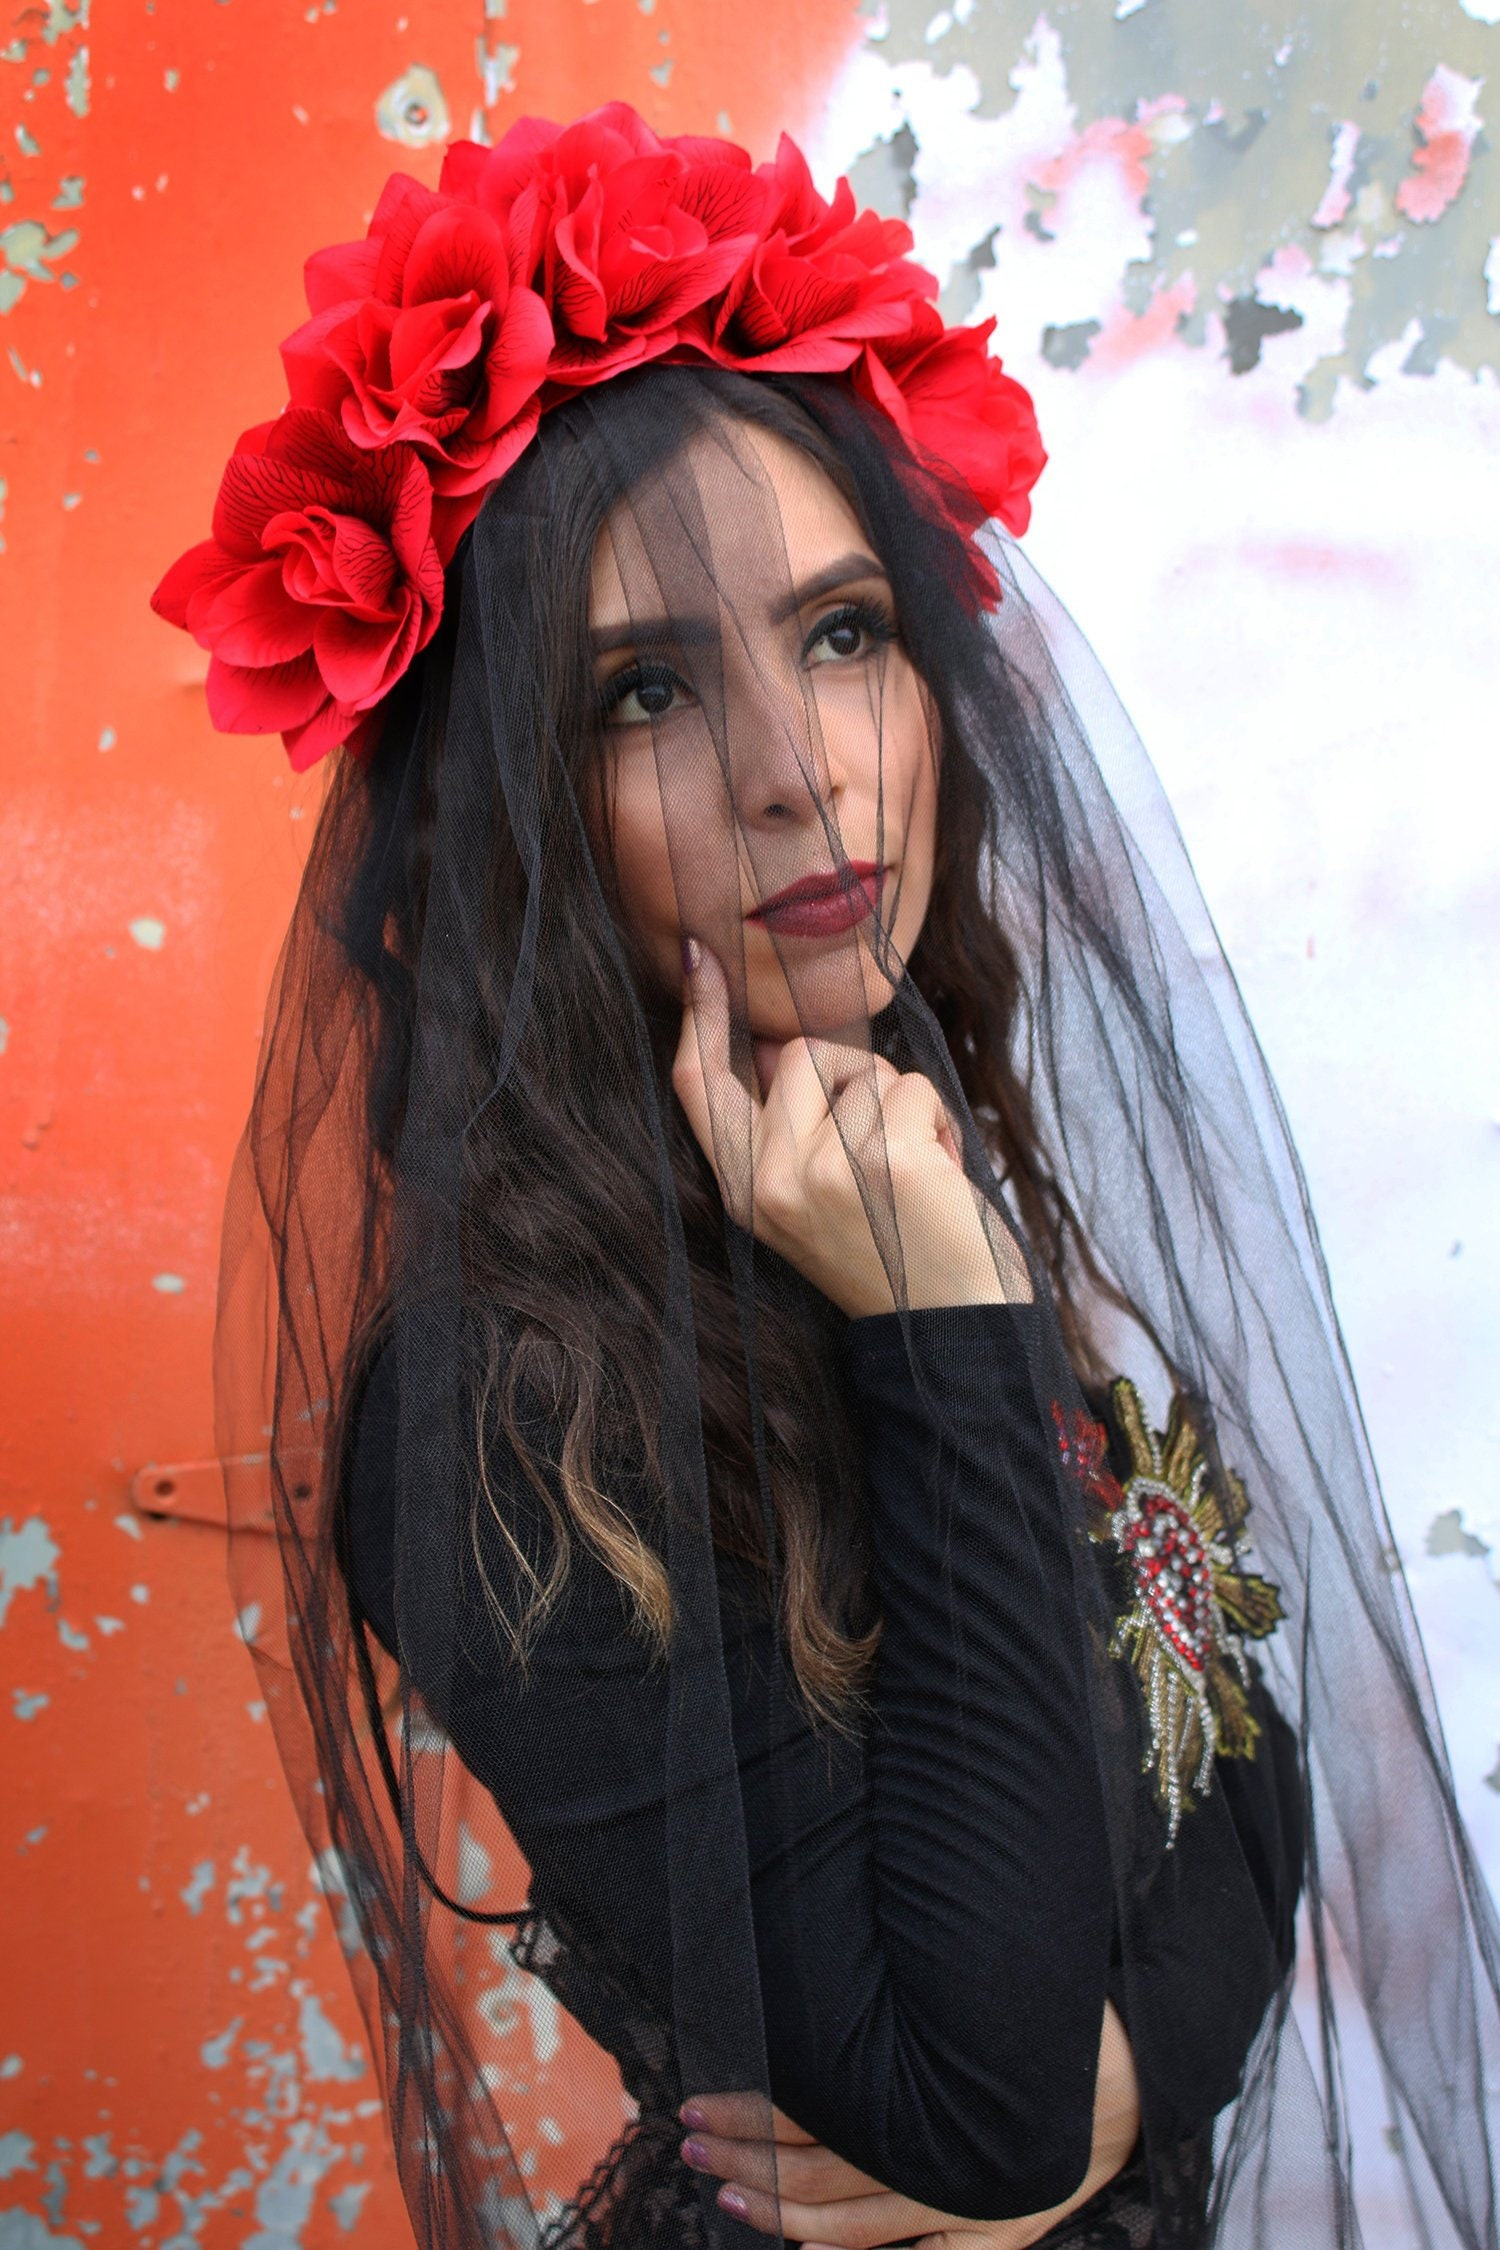 Black Rose WITH BLACK VEIL Flower Crown Headband Mexican Headpiece Festival Gothic Wedding Goth Costume Wreath Day of the Dead